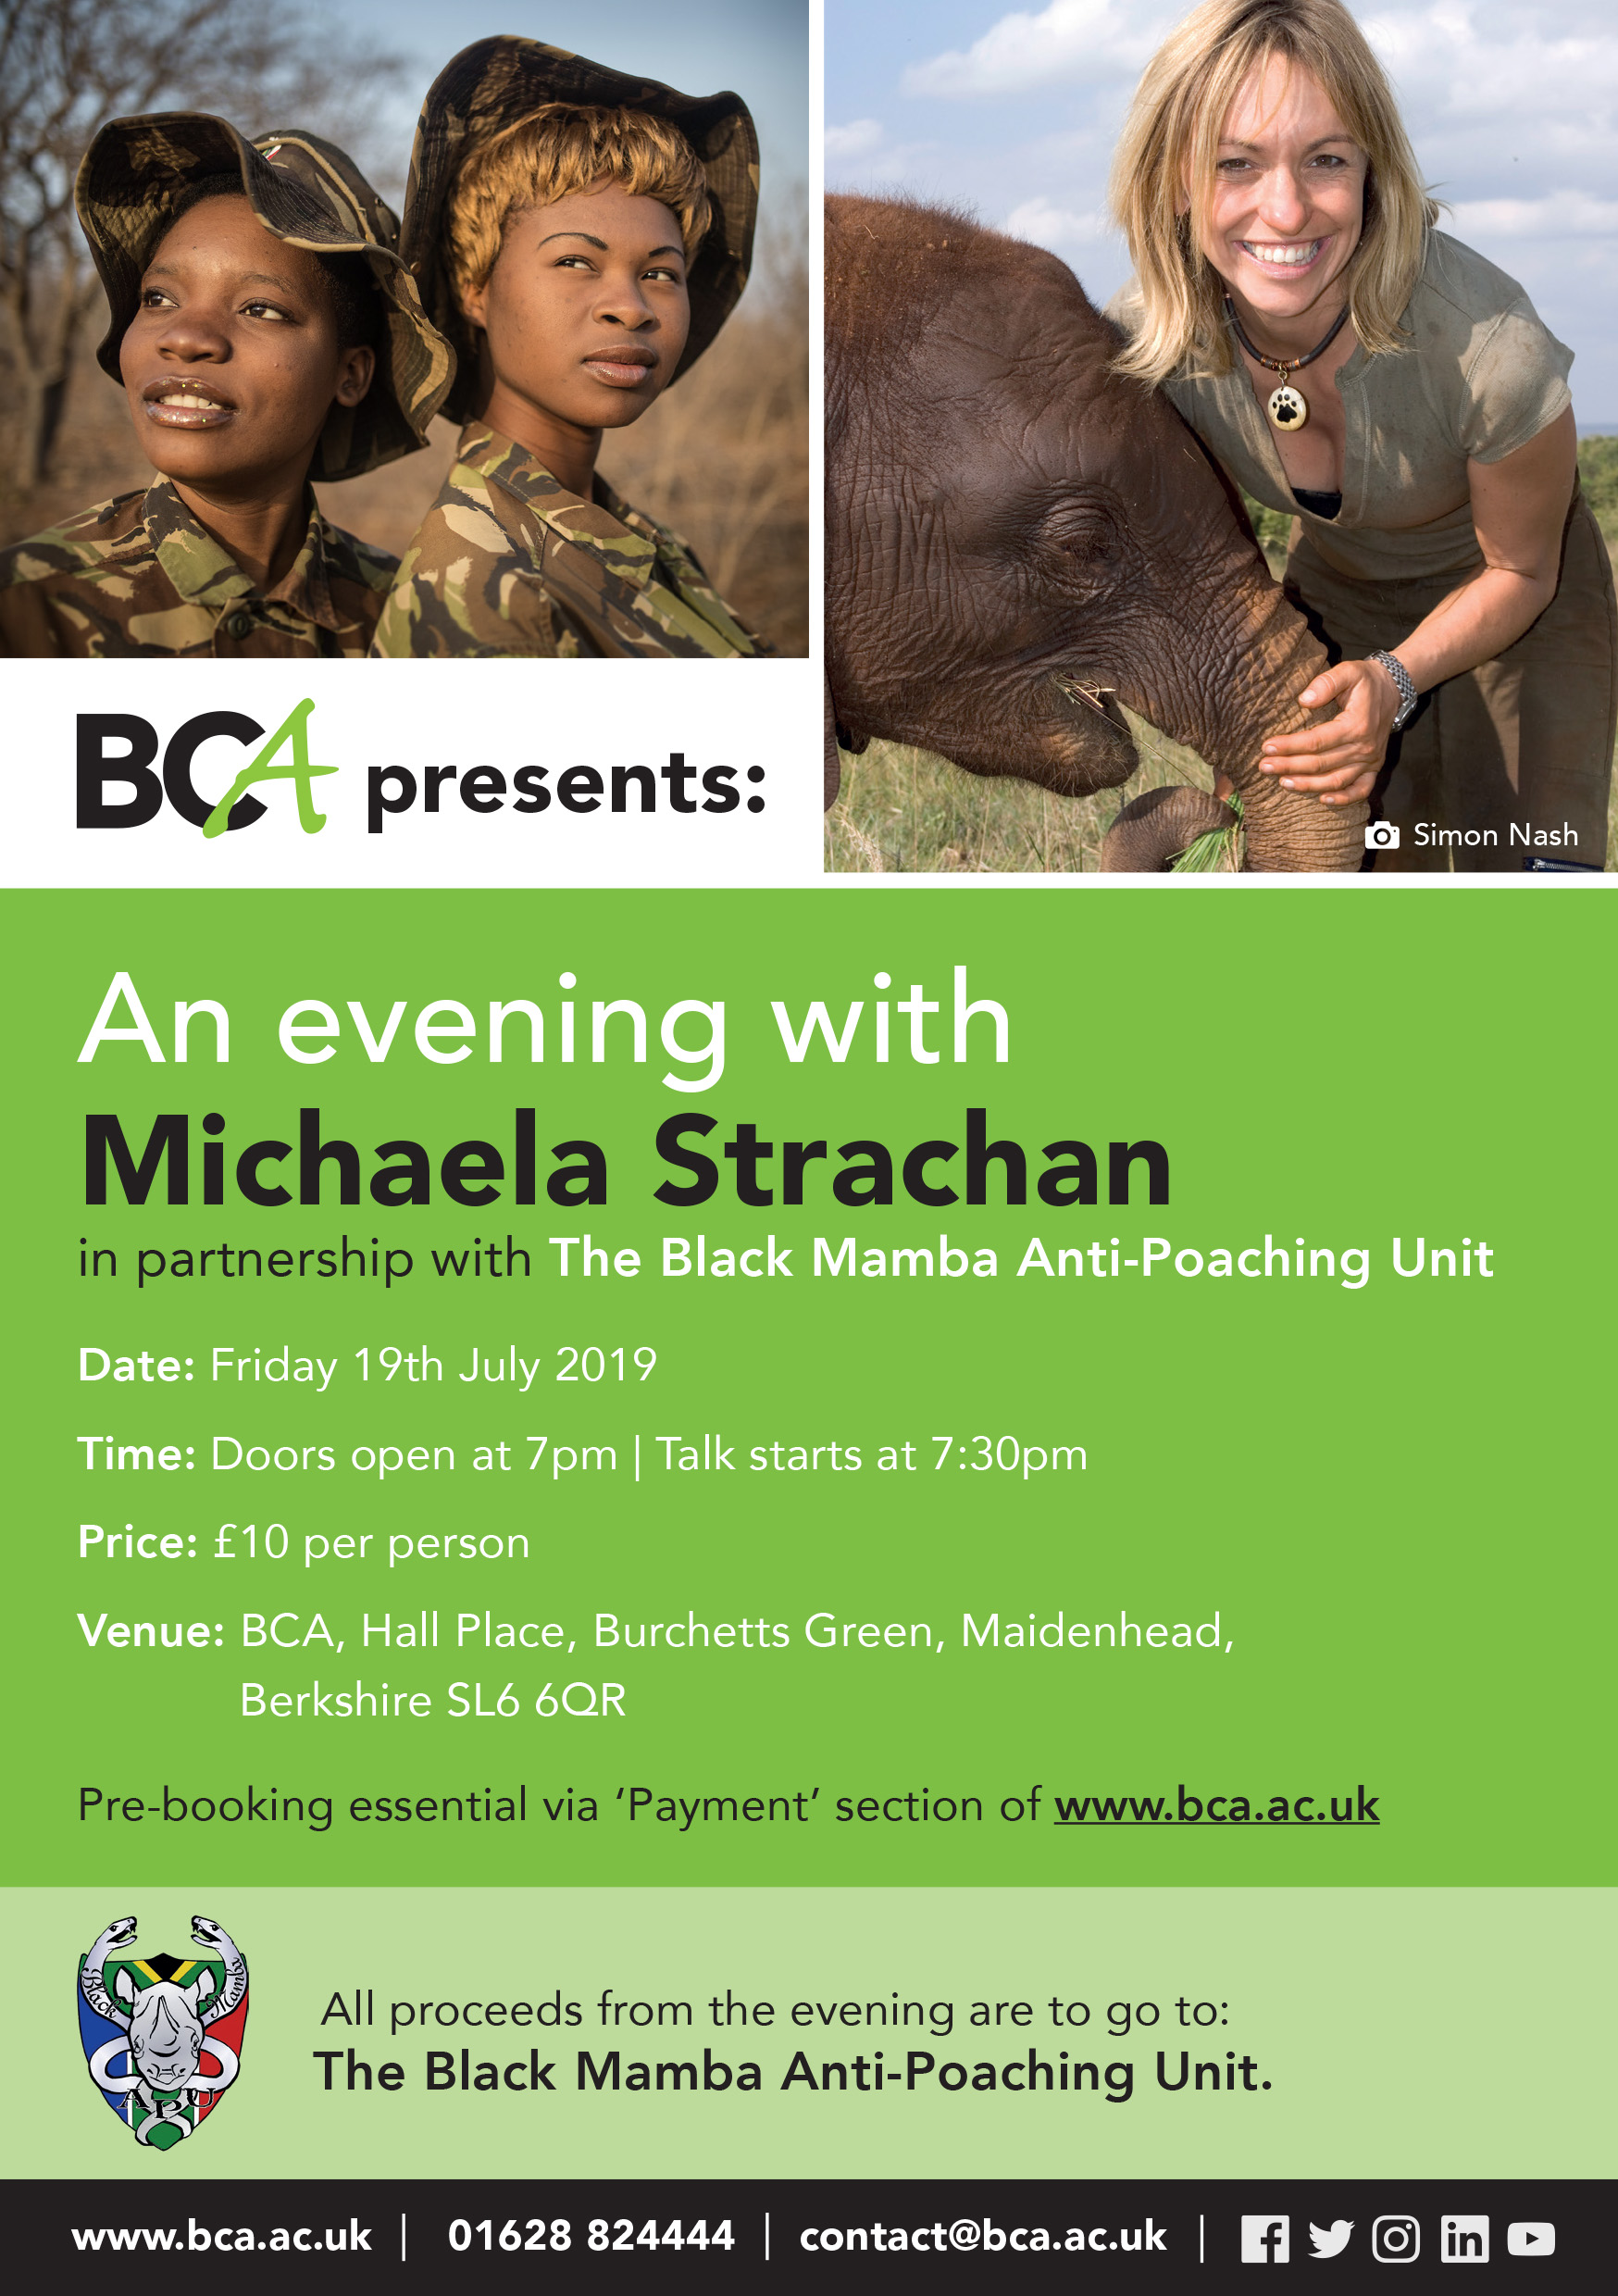 BCA Presents: An evening with Michaela Strachan